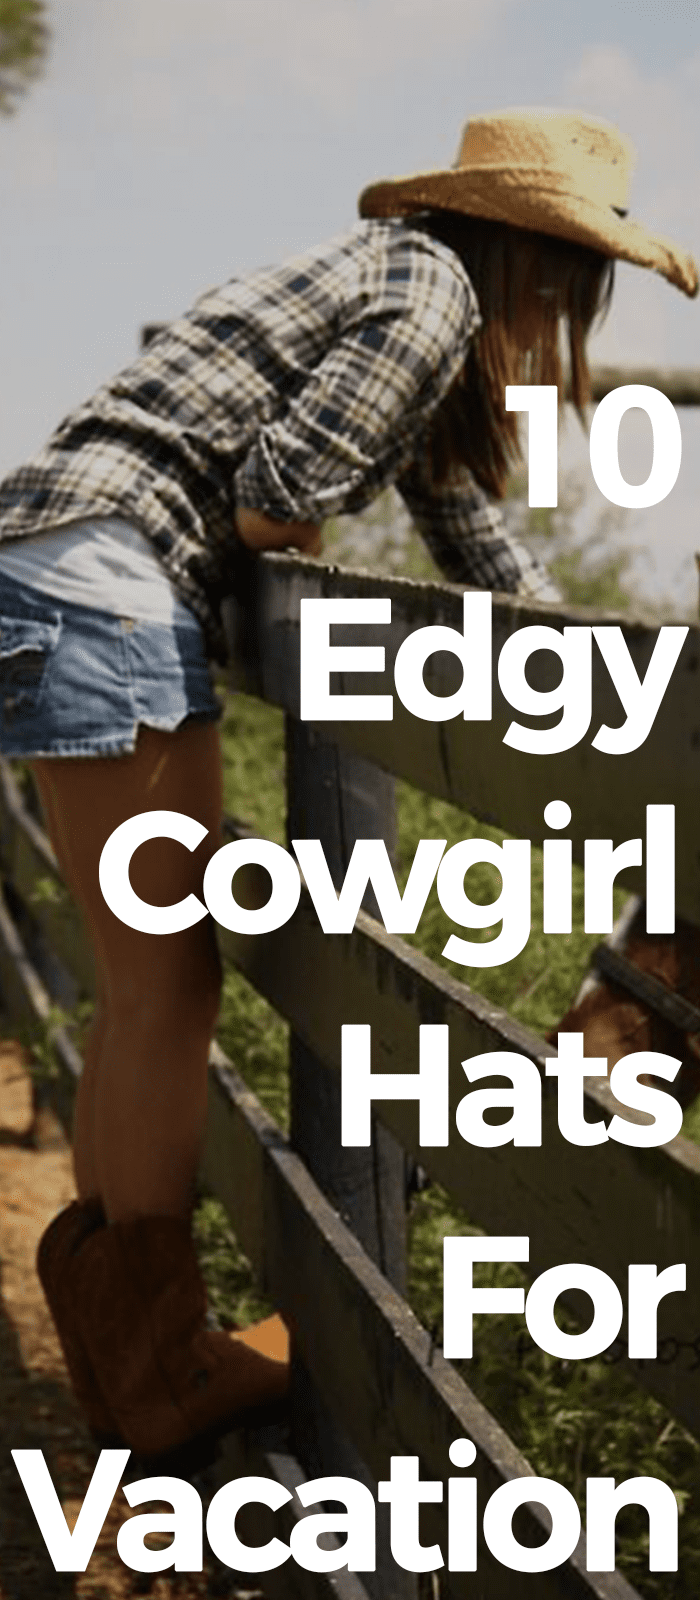 10 Edgy Cowgirl Hats For Vacation.